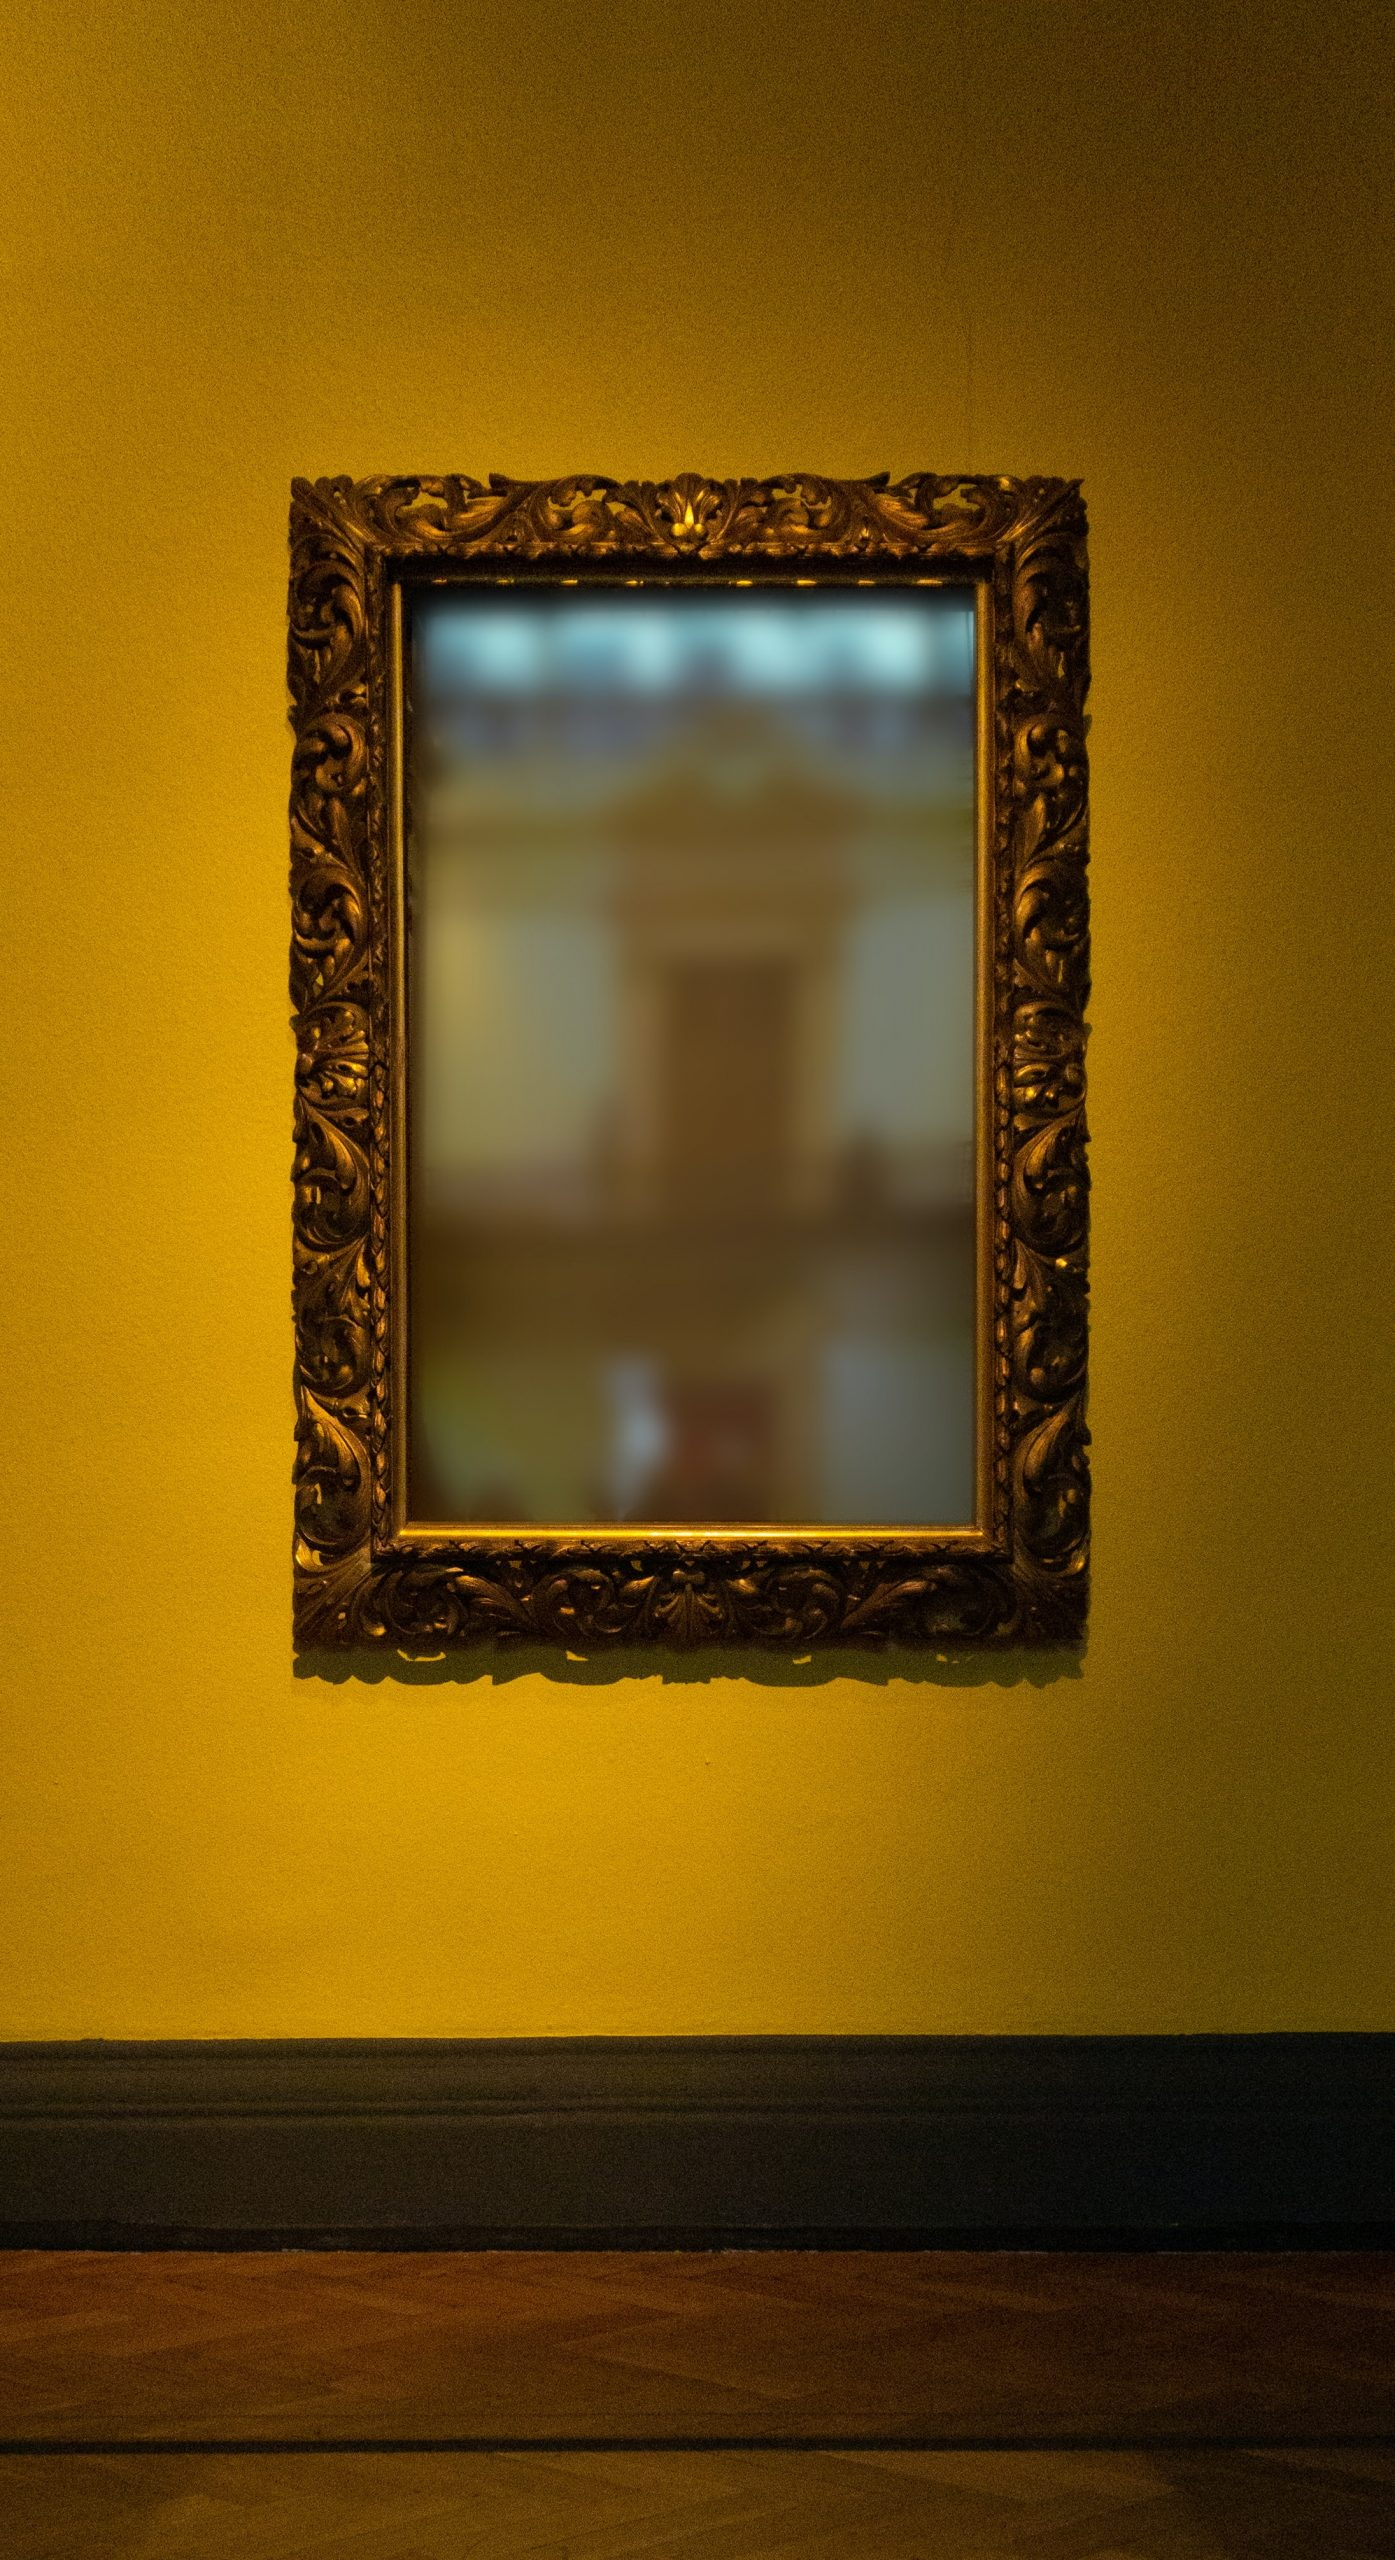 image of a mirror in a frame